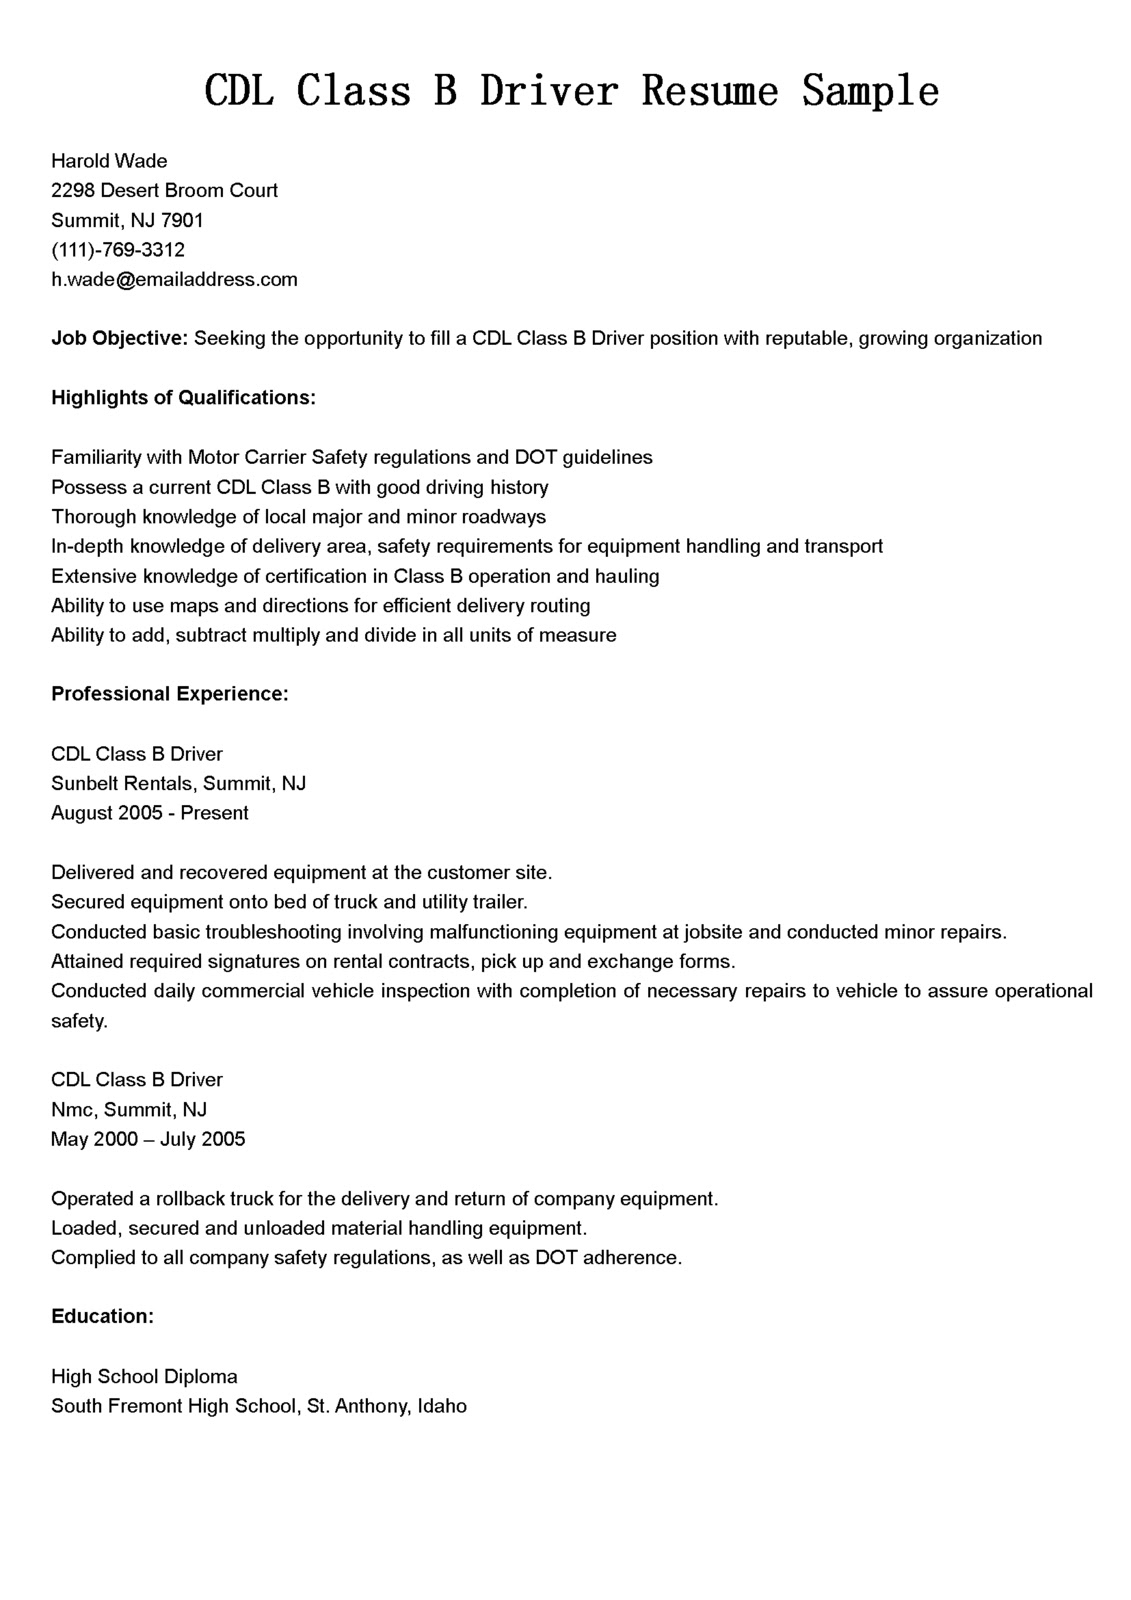 Cdl Driver Resume Sample Driver Resumes Cdl Class B Driver Resume Sample